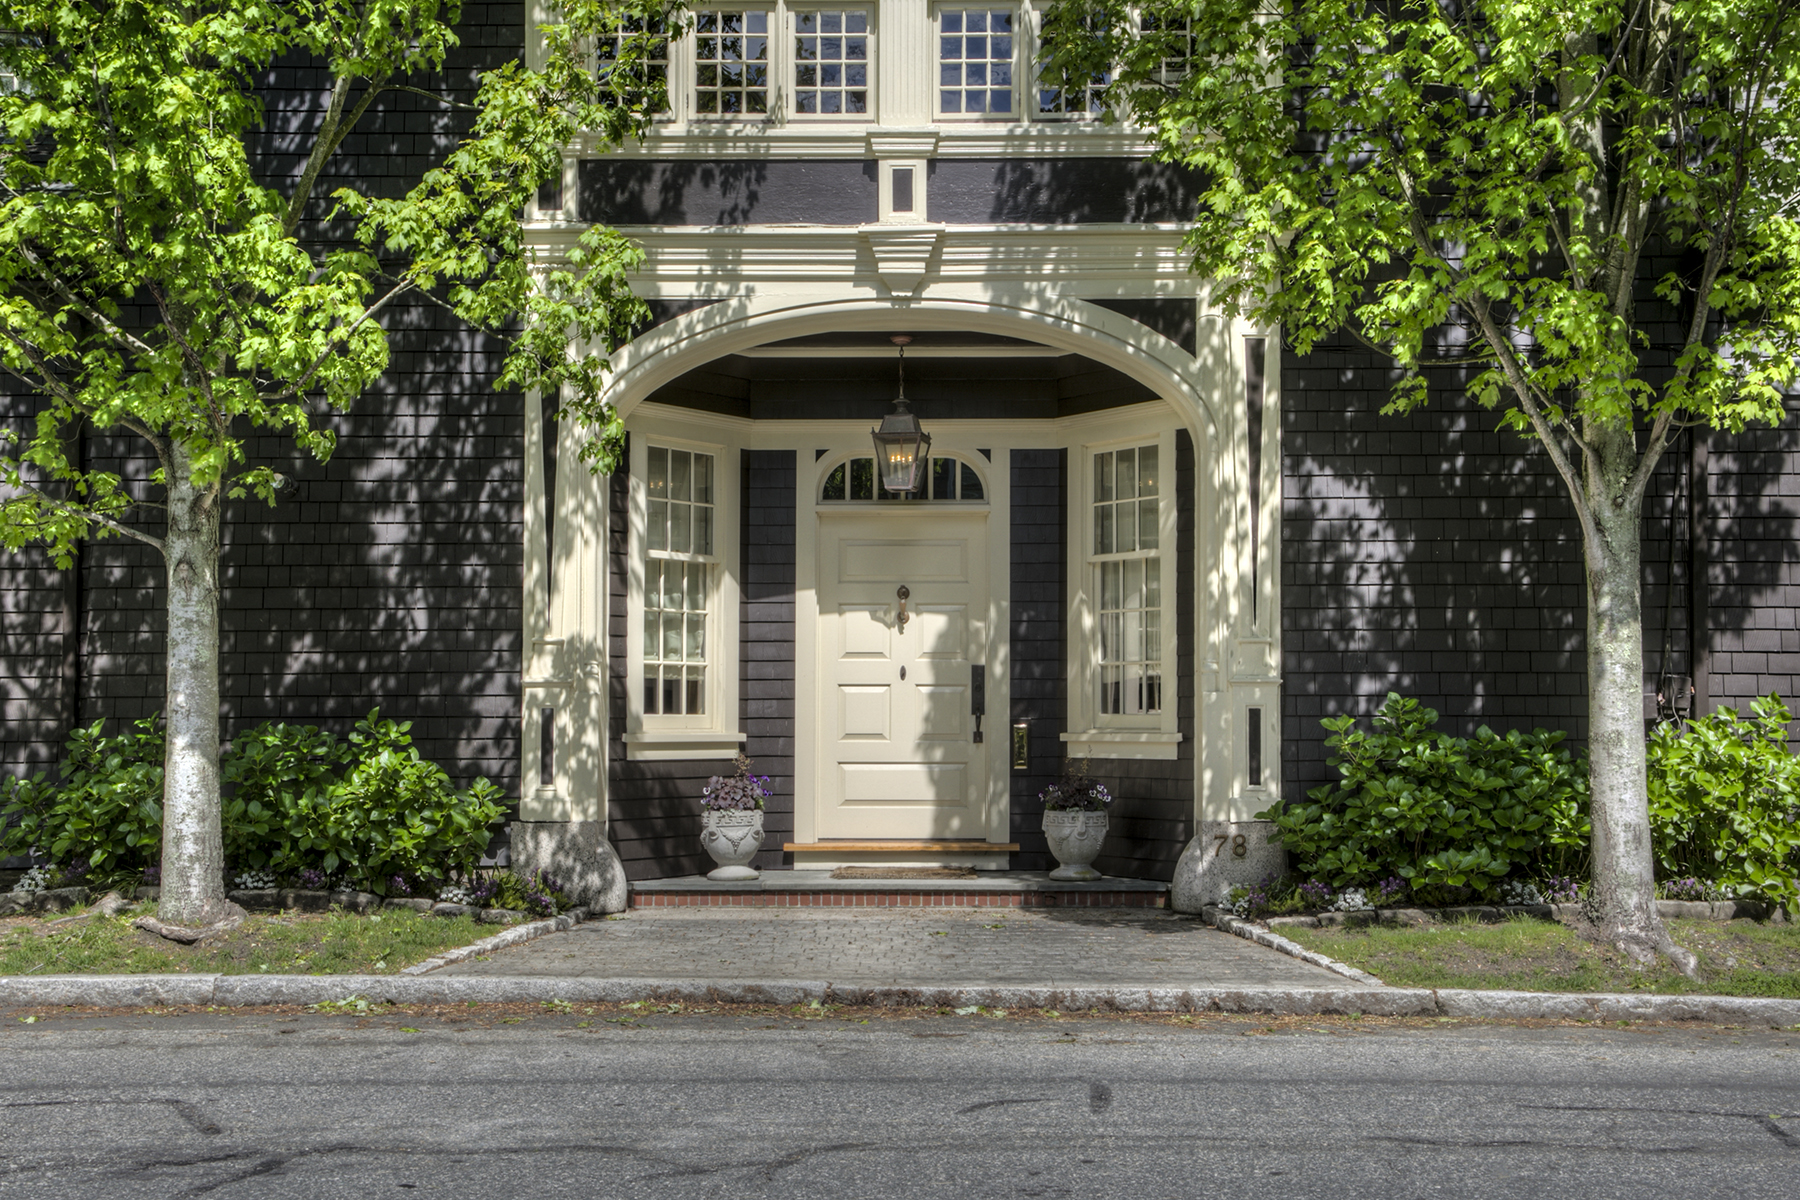 Condominium for Sale at Chetwode Carriage House 78 Coggeshall Avenue Units 2, 3, 4 Newport, Rhode Island 02840 United States